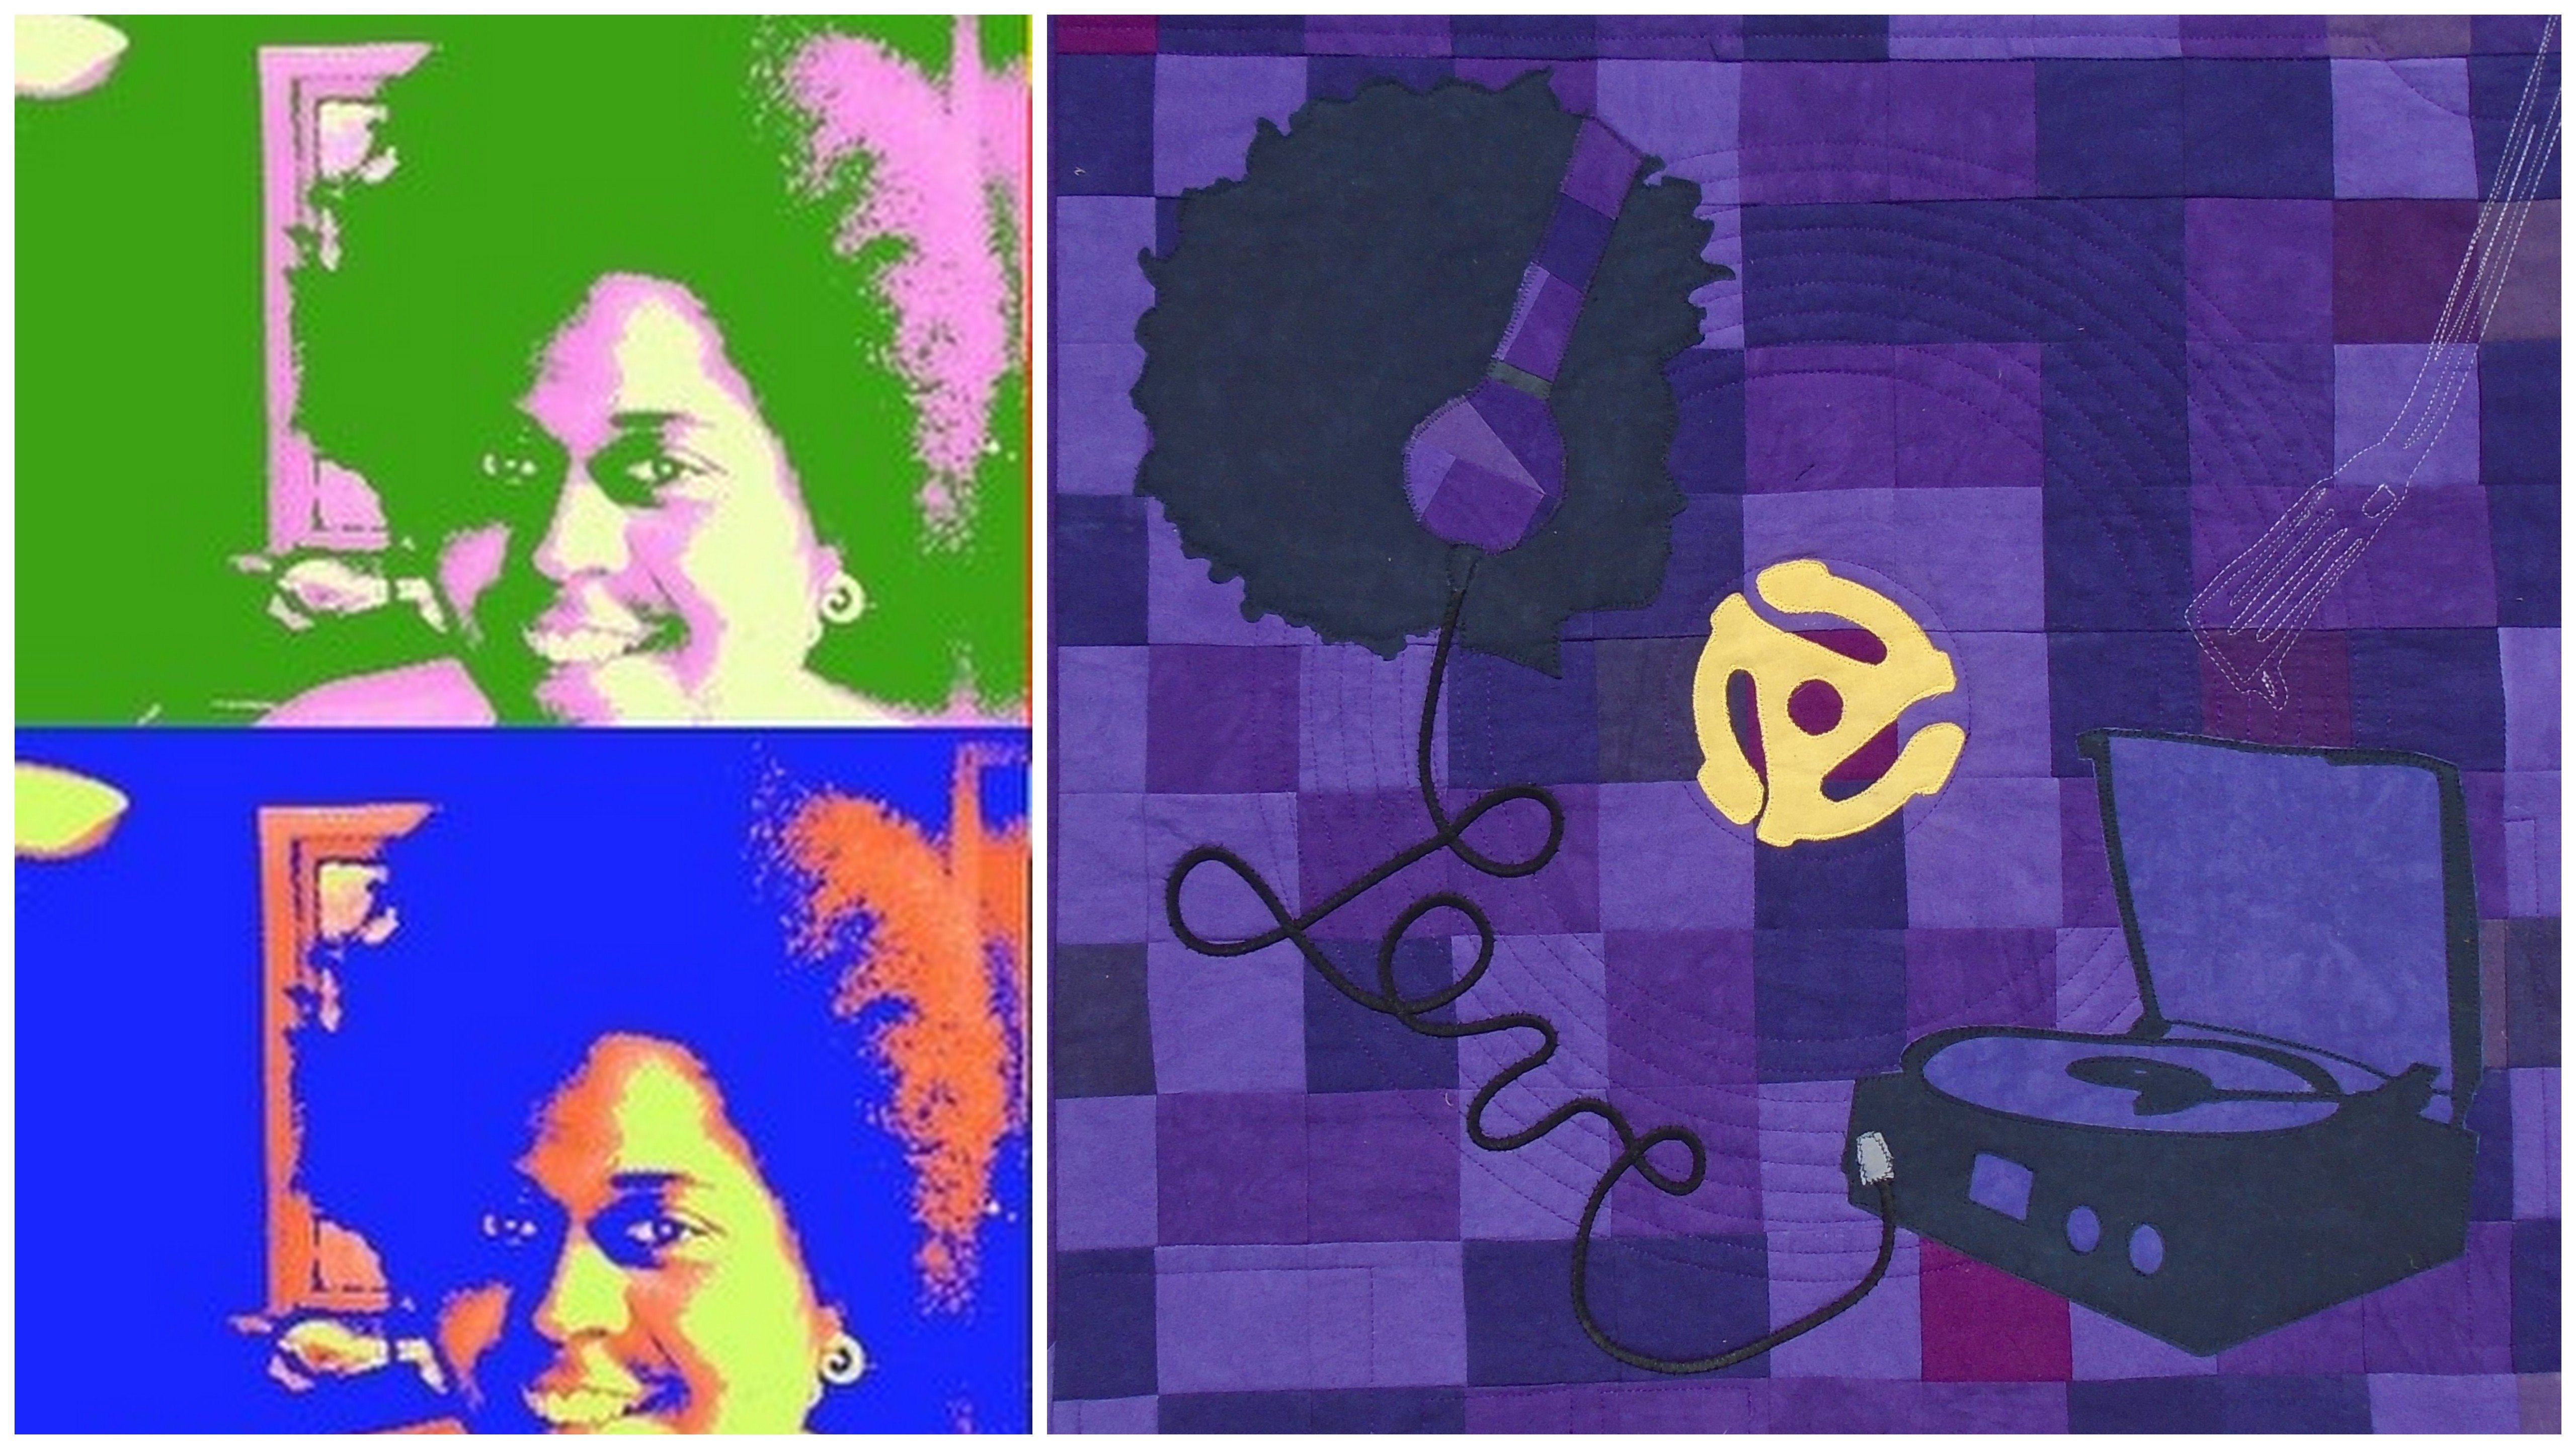 Left - Yanick portrait, Right purple quilt showing a girl with headset and a turnable appliquéd in black fabric